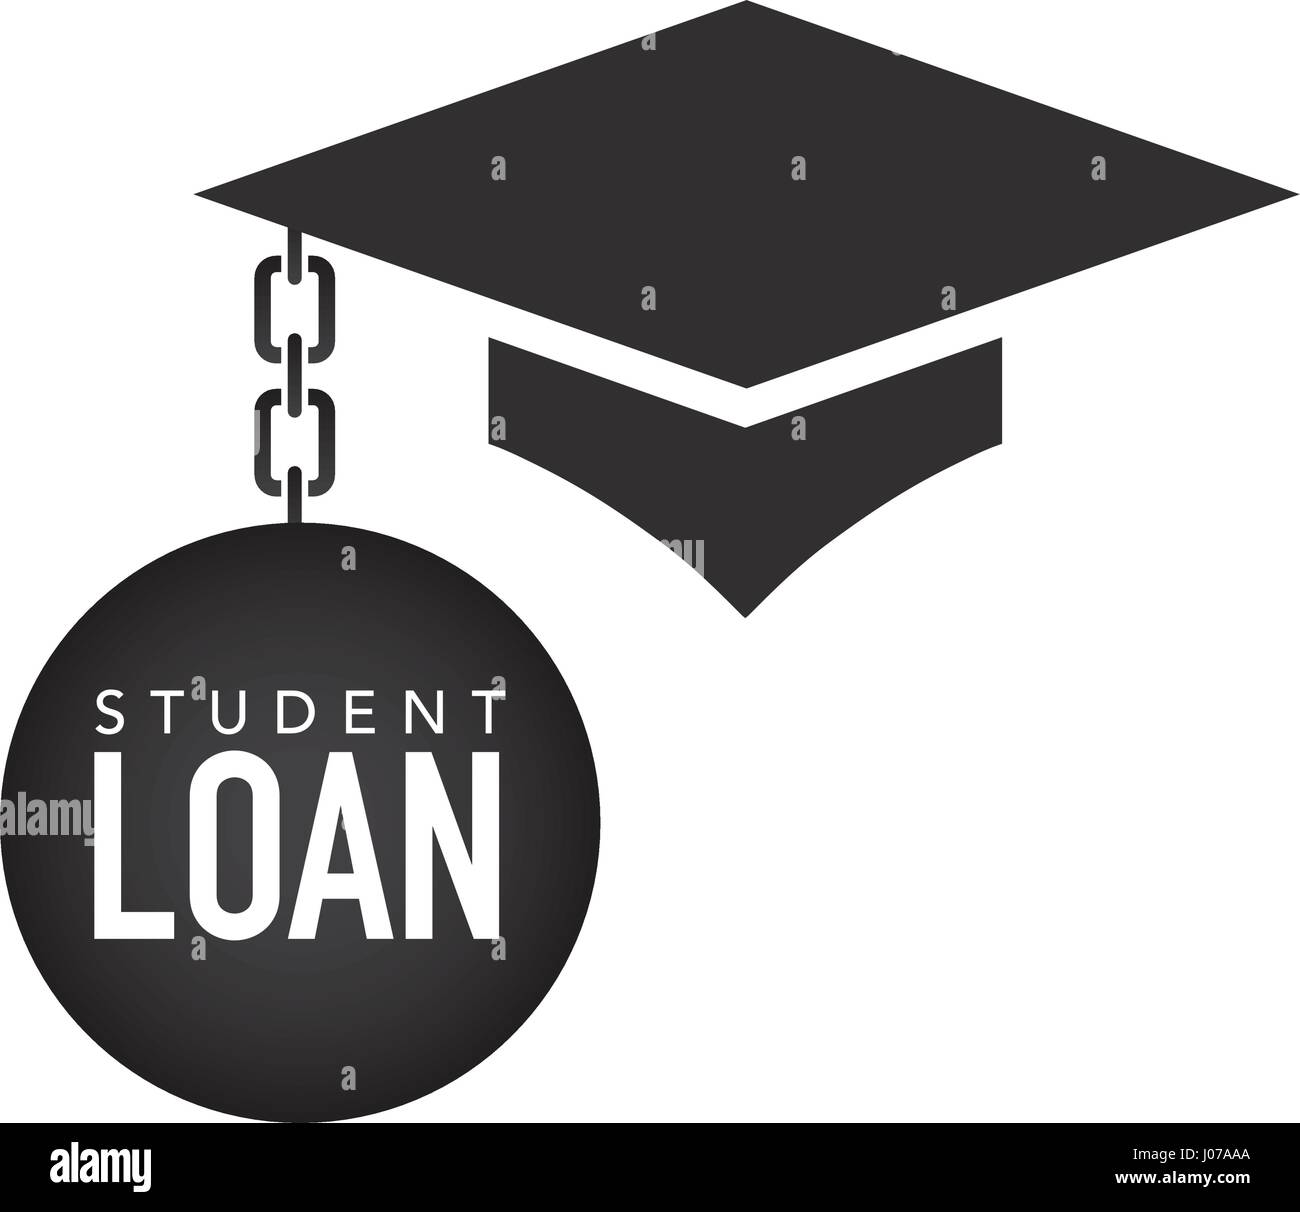 Graduate Student Loan Icon - Student Loan Graphics for Education Financial Aid or Assistance, Government Loans, - Stock Image